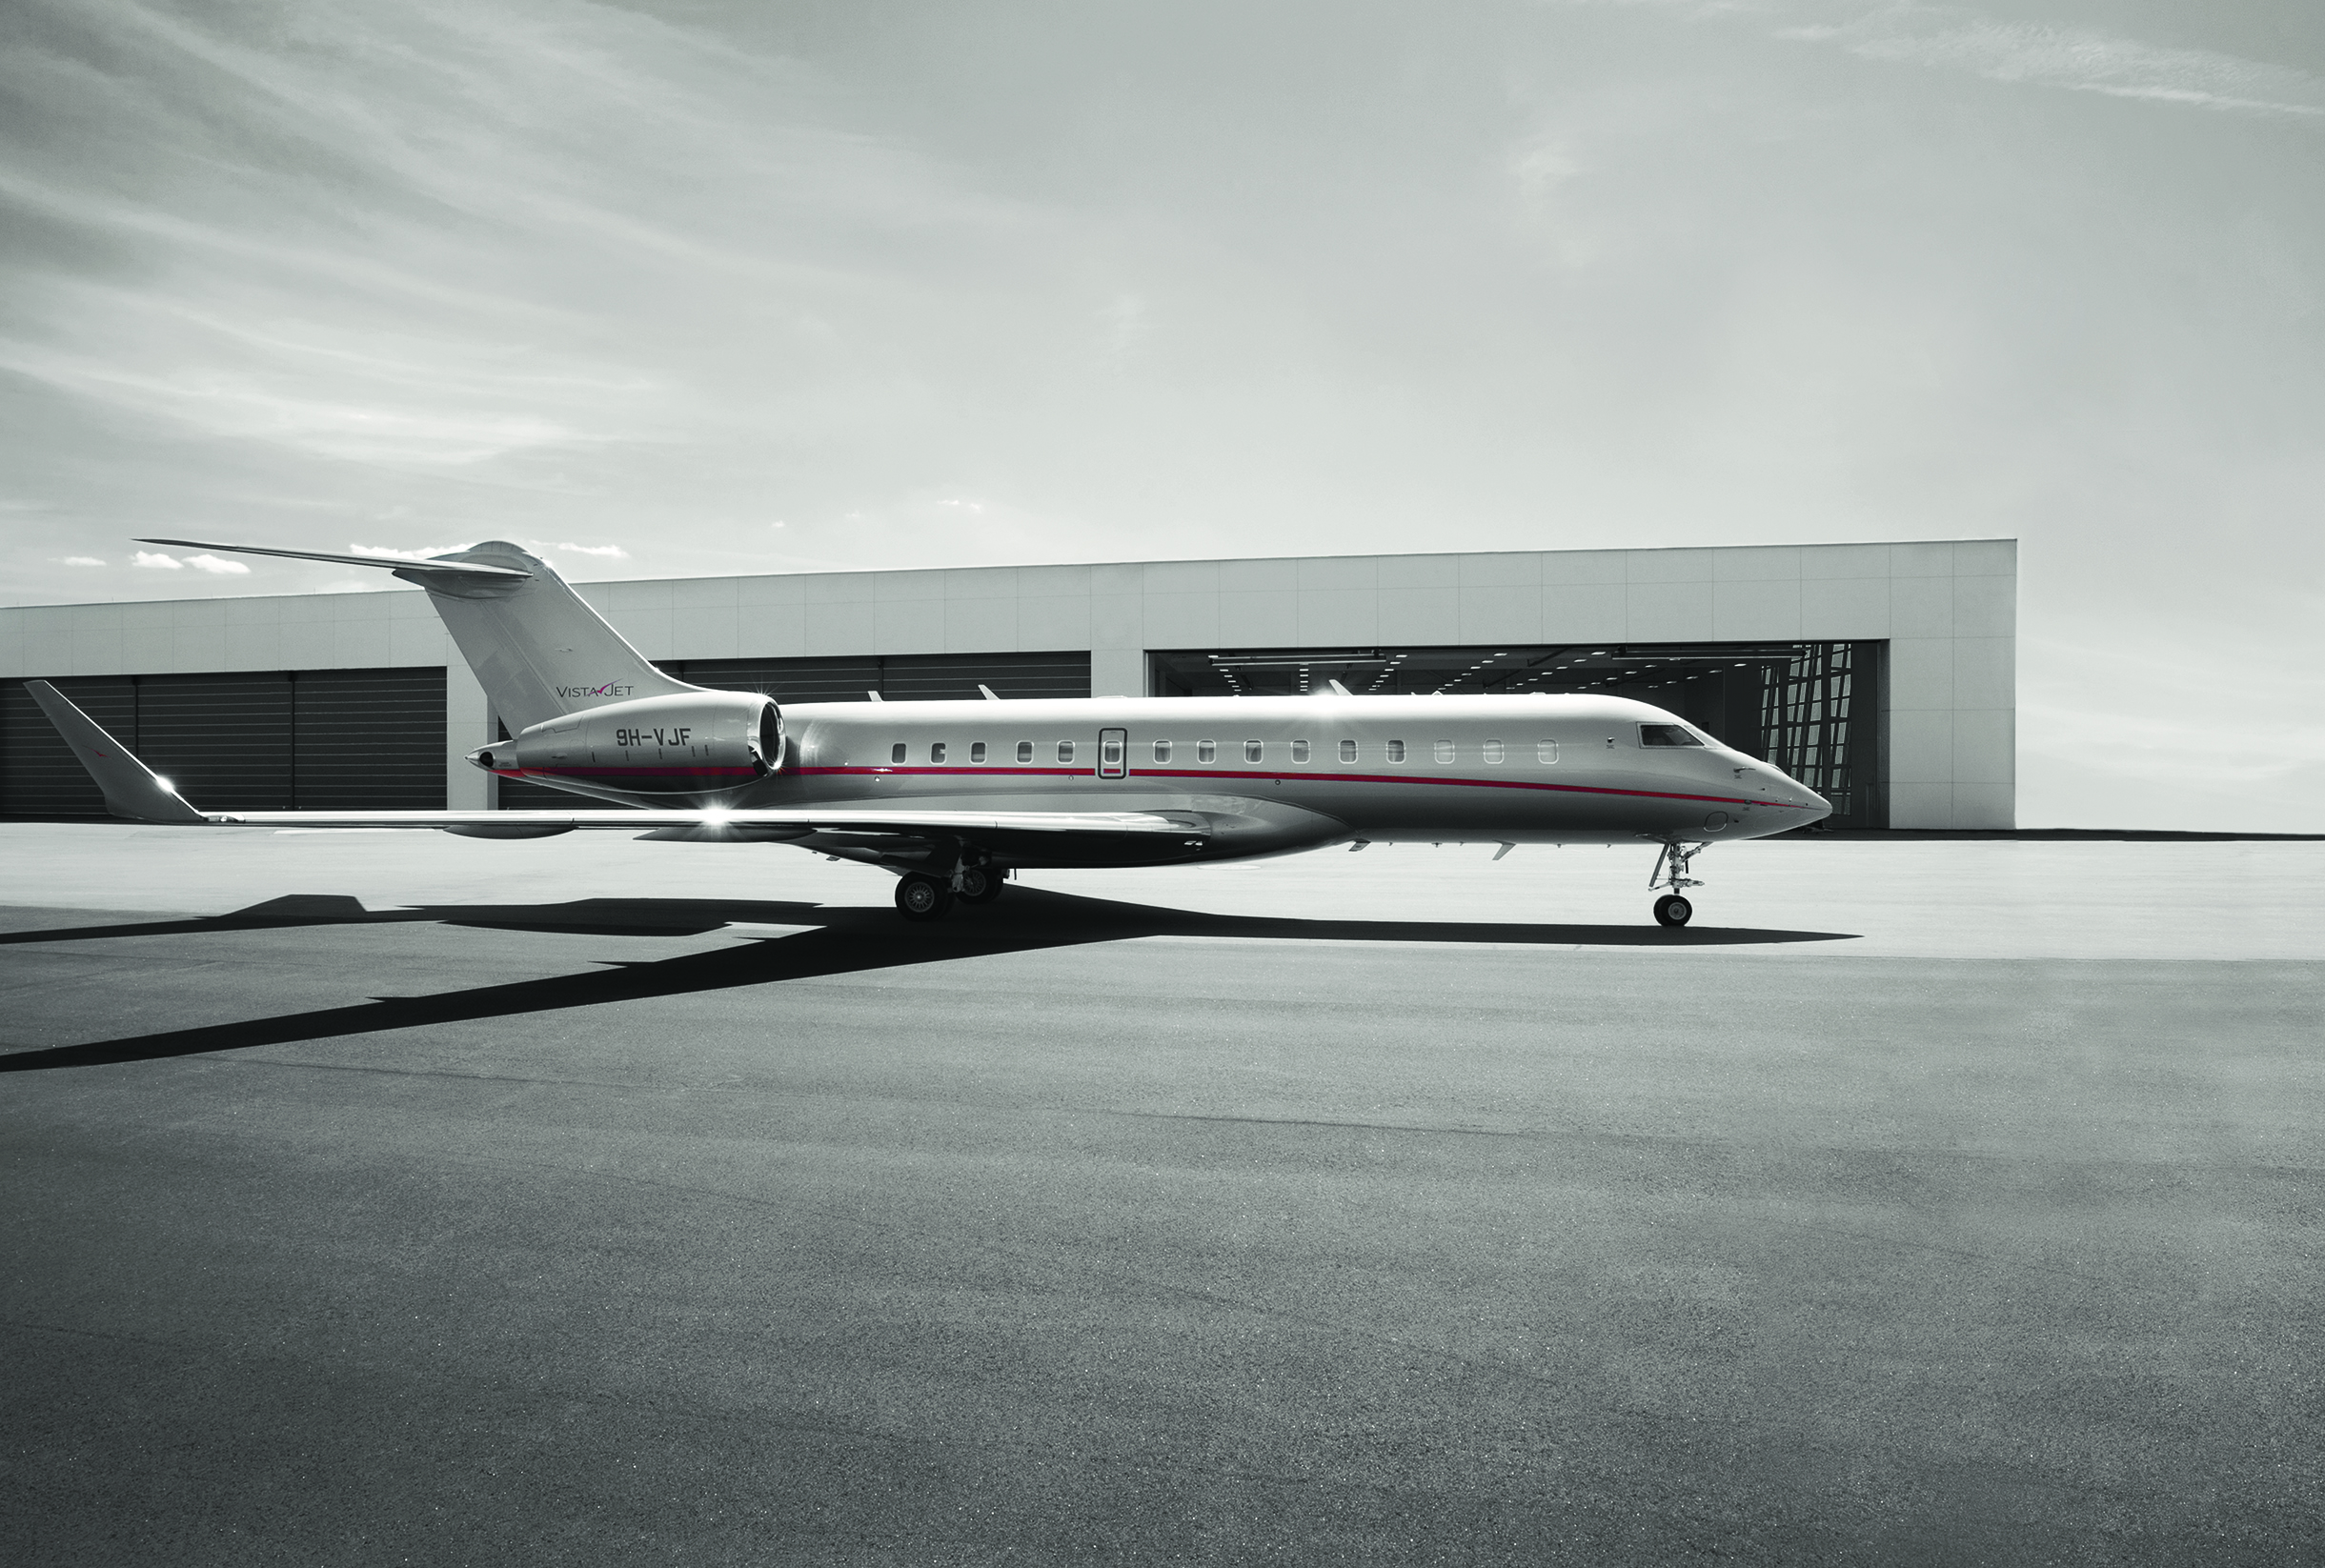 VistaJet Global 6000